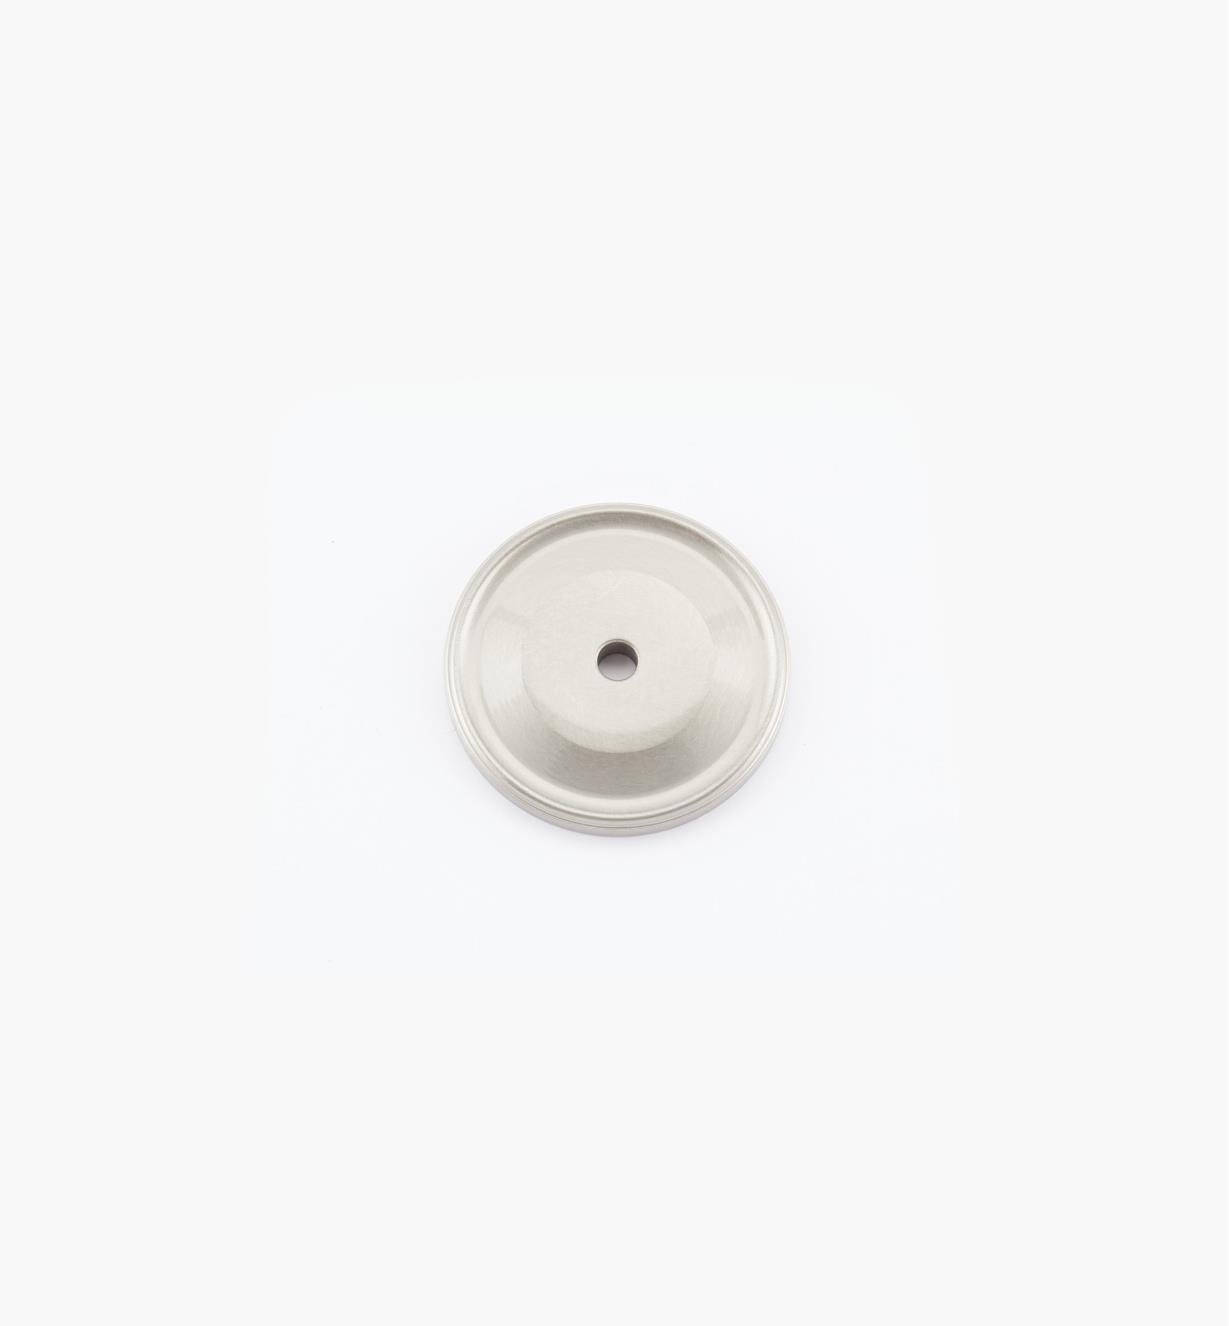 "02W1824 - 1 1/2"" Dull Nickel Knob Backplate"